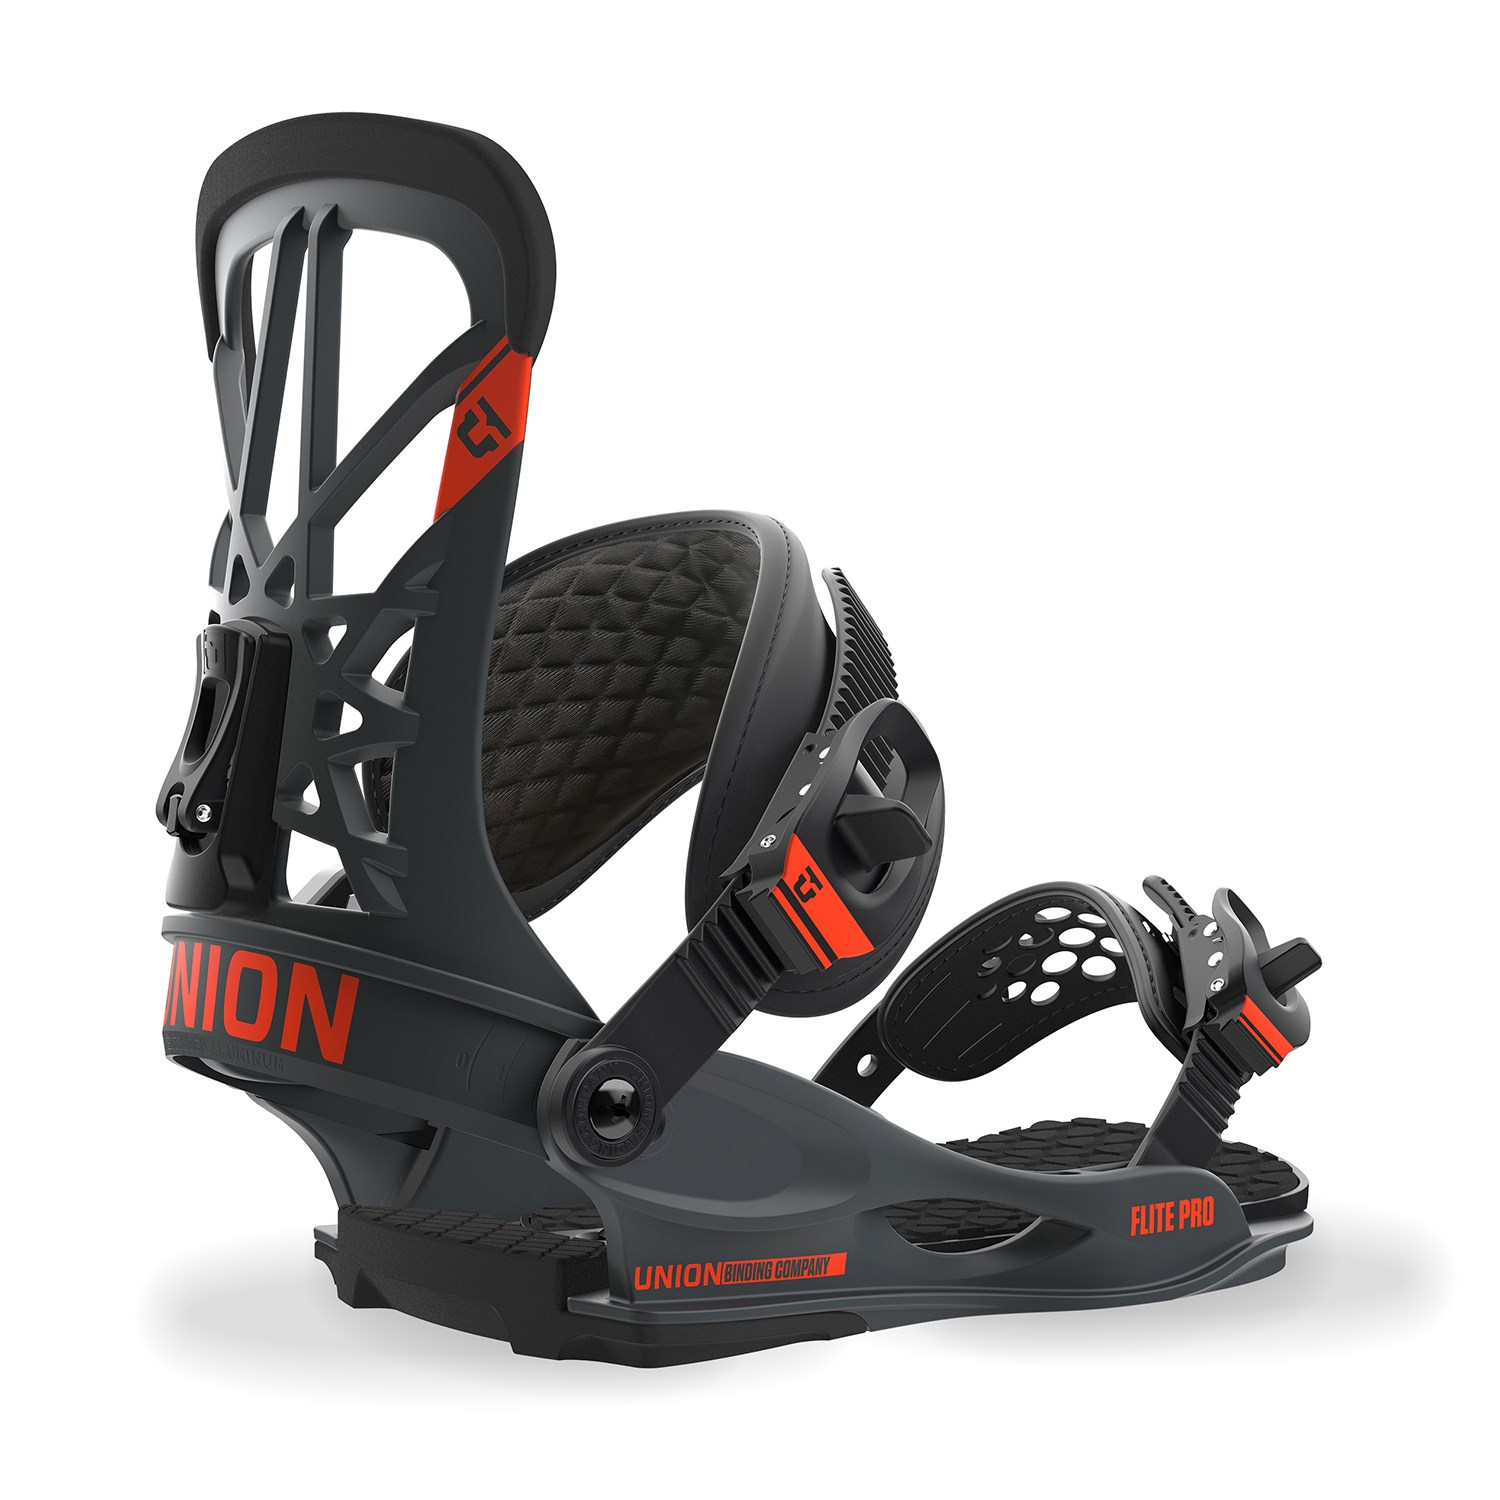 Attacchi Snowboard Union Flite Pro 18 (More Colors)